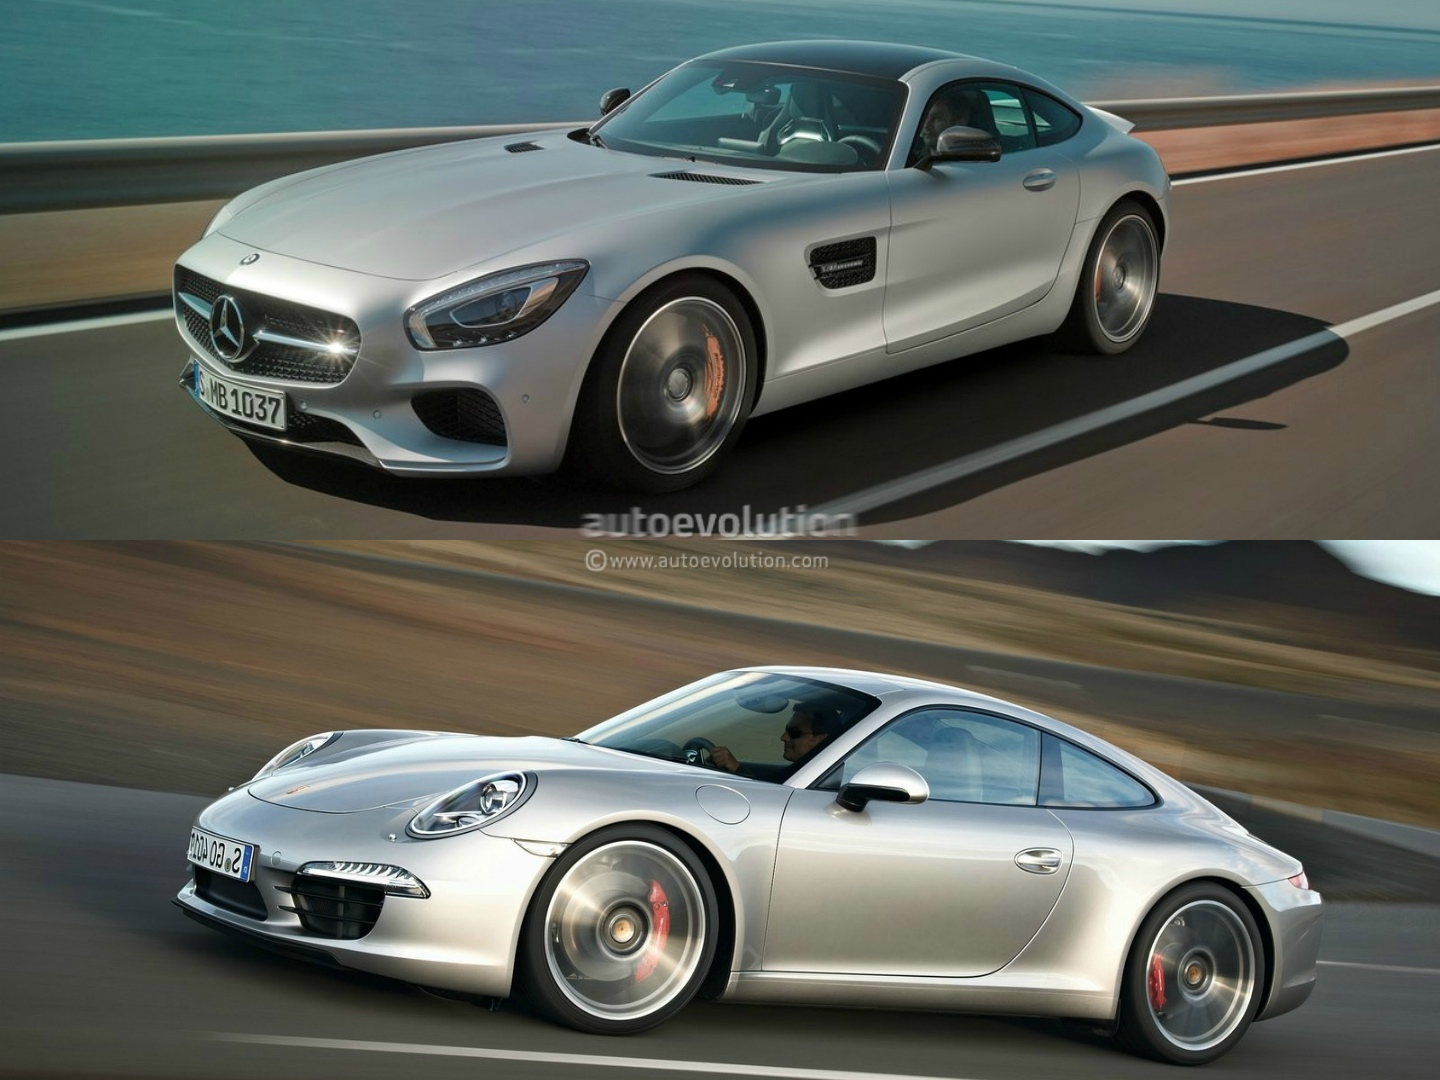 mercedes benz amg gt vs porsche 911 photo comparison autoevolution. Black Bedroom Furniture Sets. Home Design Ideas